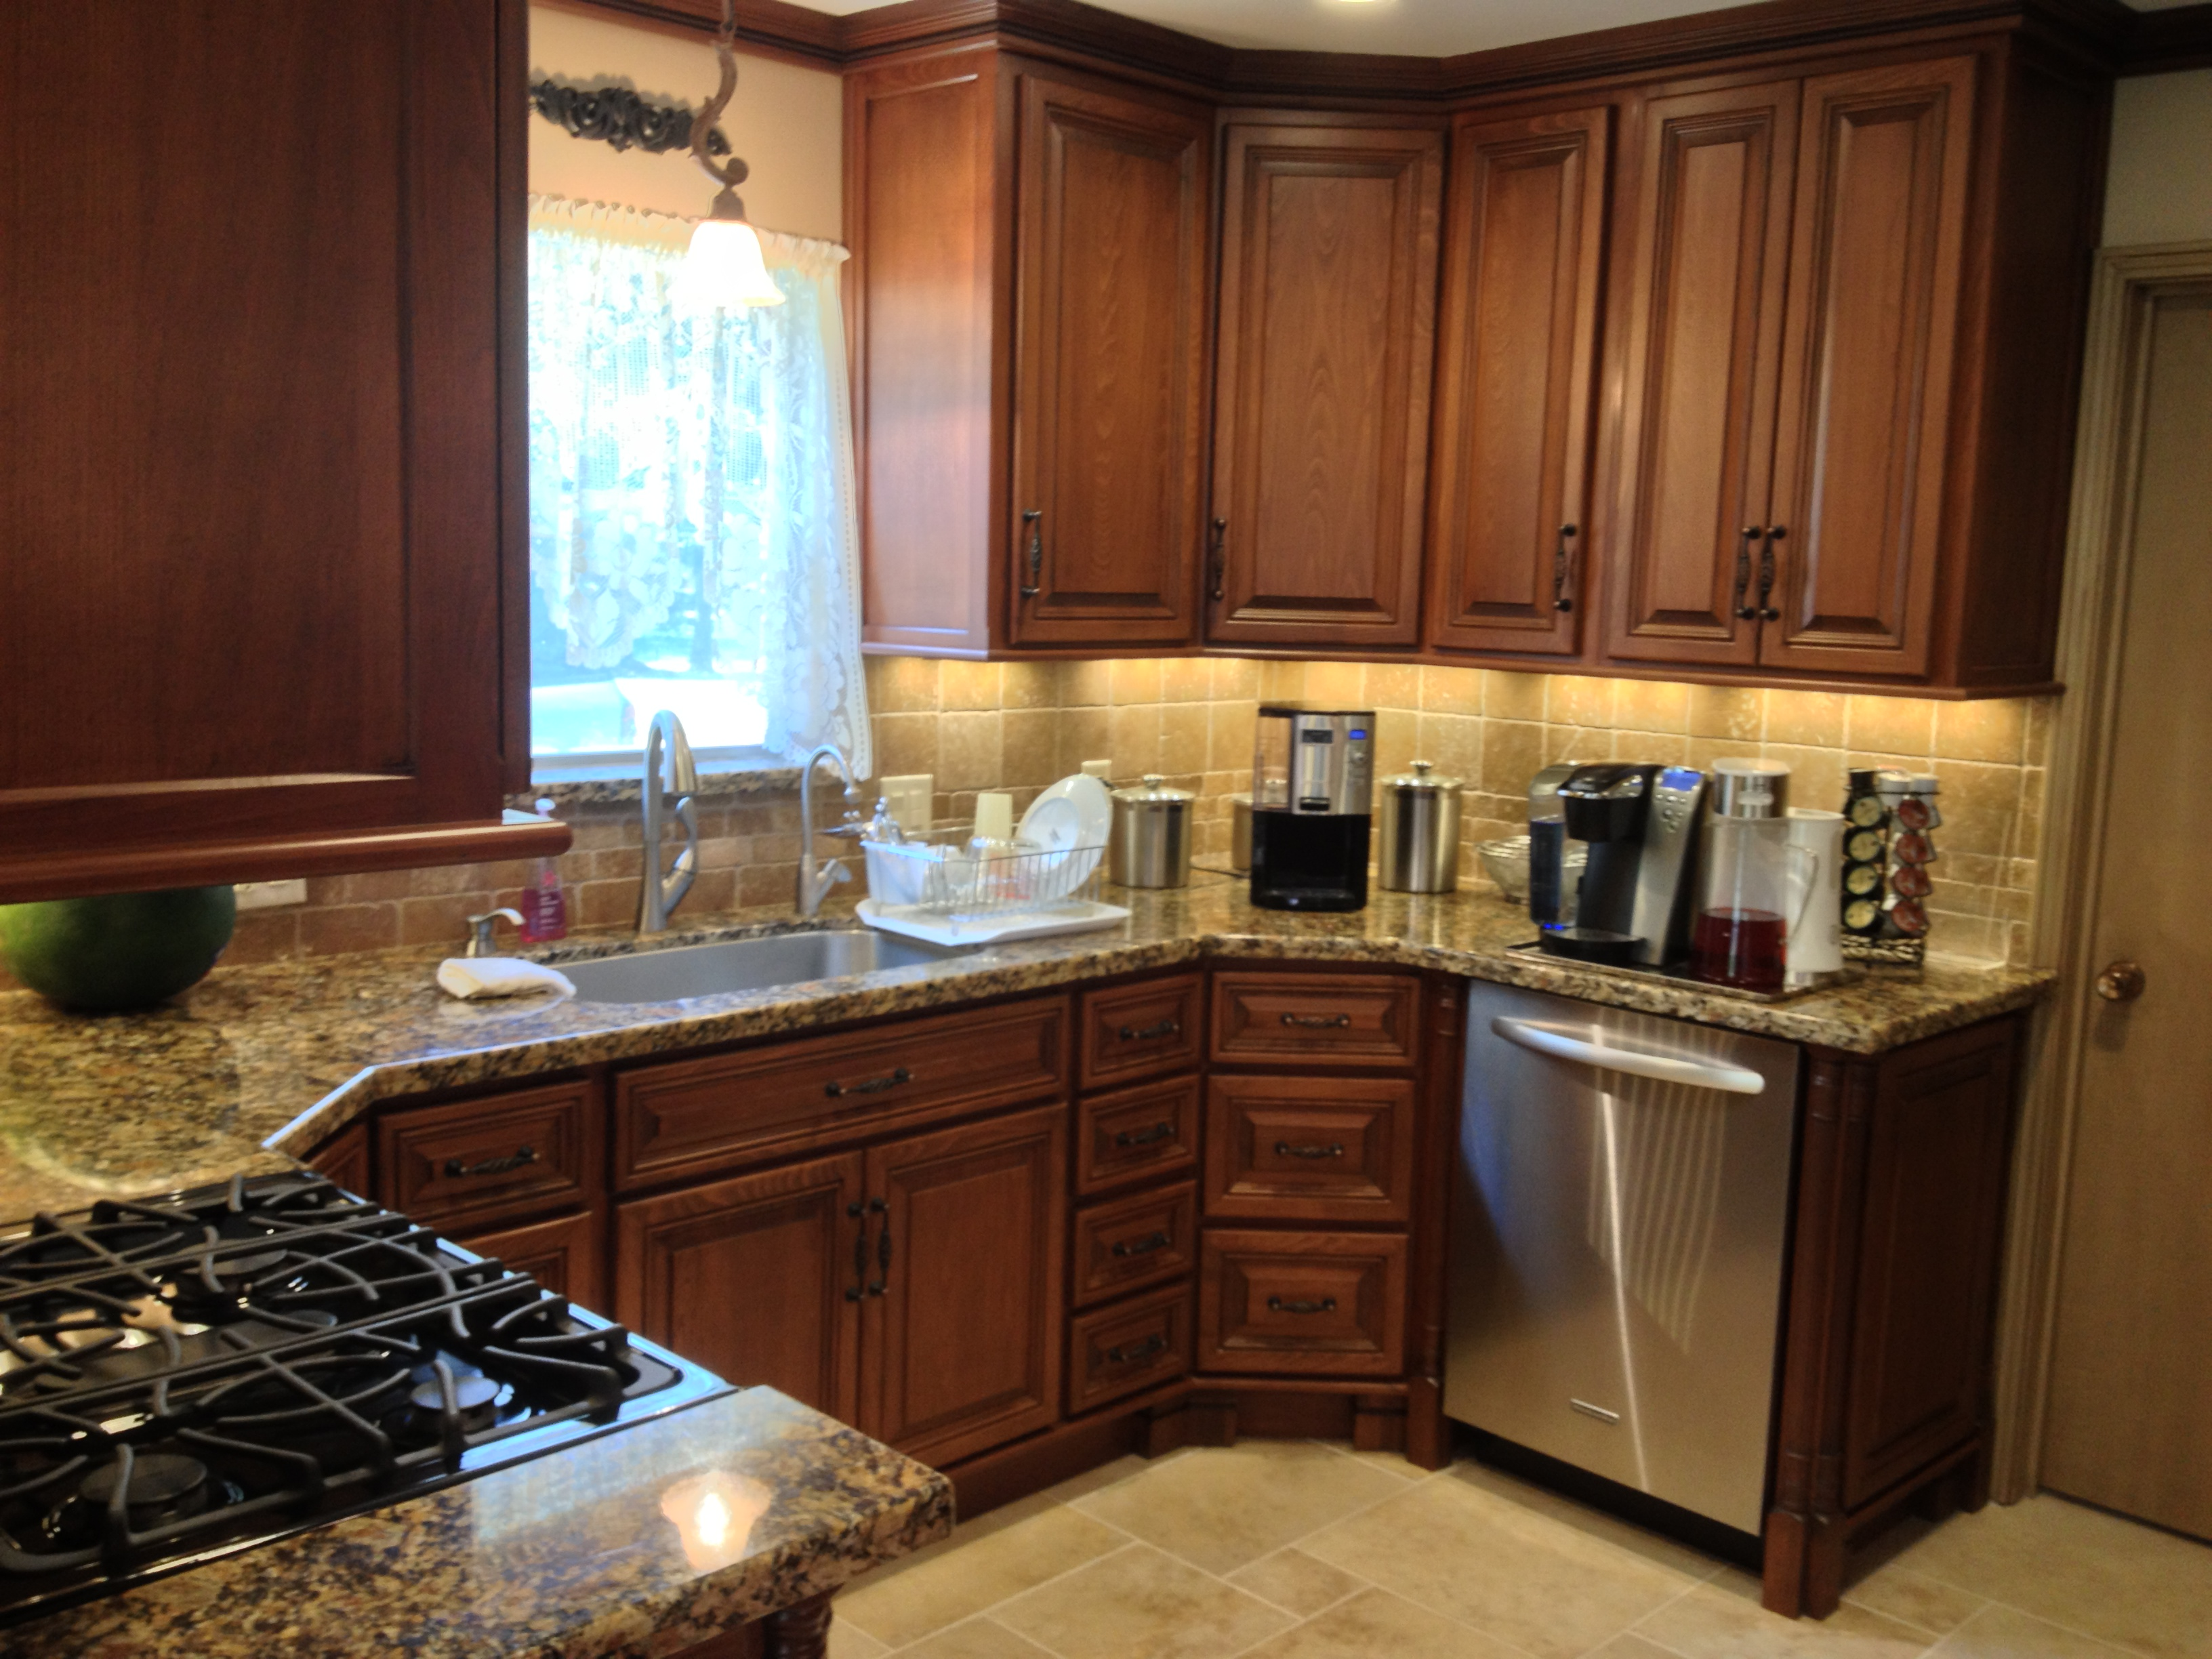 Custom kitchen cabinet maker Archives - DC Kitchens and ...